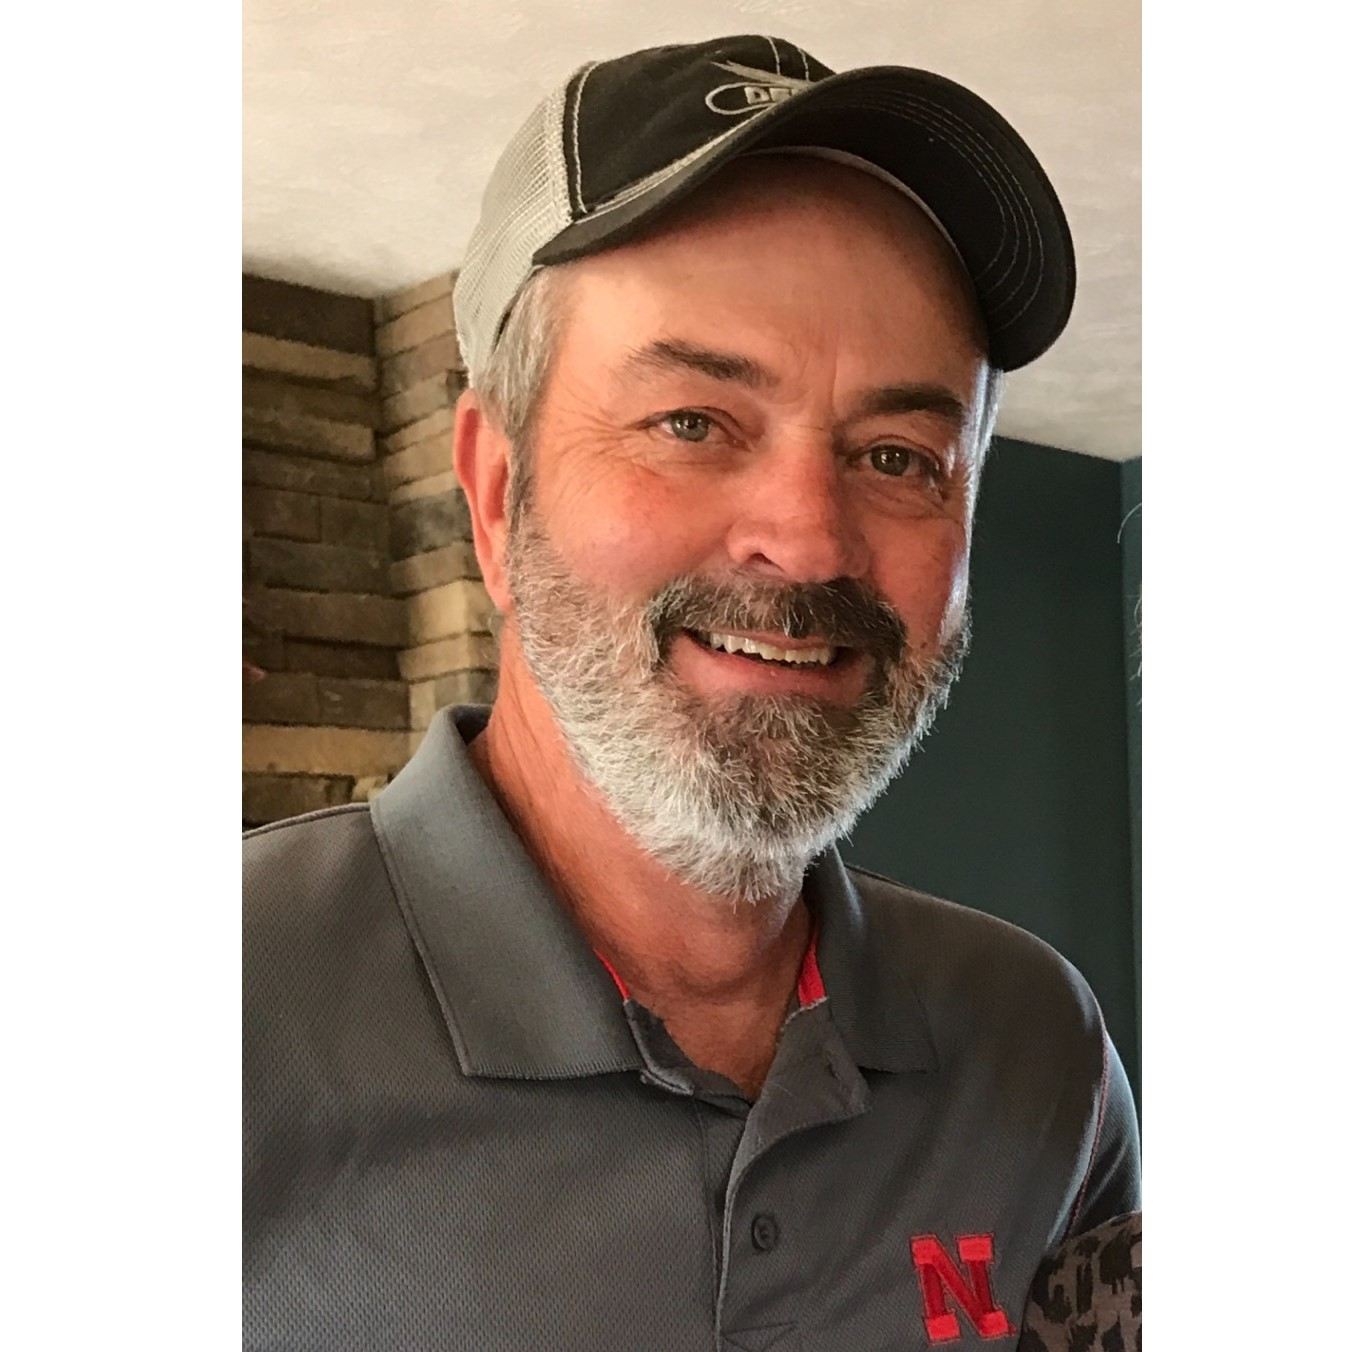 Since 2002, I have been overseeing the construction in homes from start to finish. I have been in the construction industry since the age of 16. I really enjoy working with the clients on a day to day basis to make sure their needs are being met and they are completely satisfied with the final product. I have also involved in the commercial side of construction.  I grew up in Omaha, Ne. My wife Tammy and I moved to Tekemah, NE about 20 years ago to enjoy time with family. I like to hunt, fish and golf in any spare time.